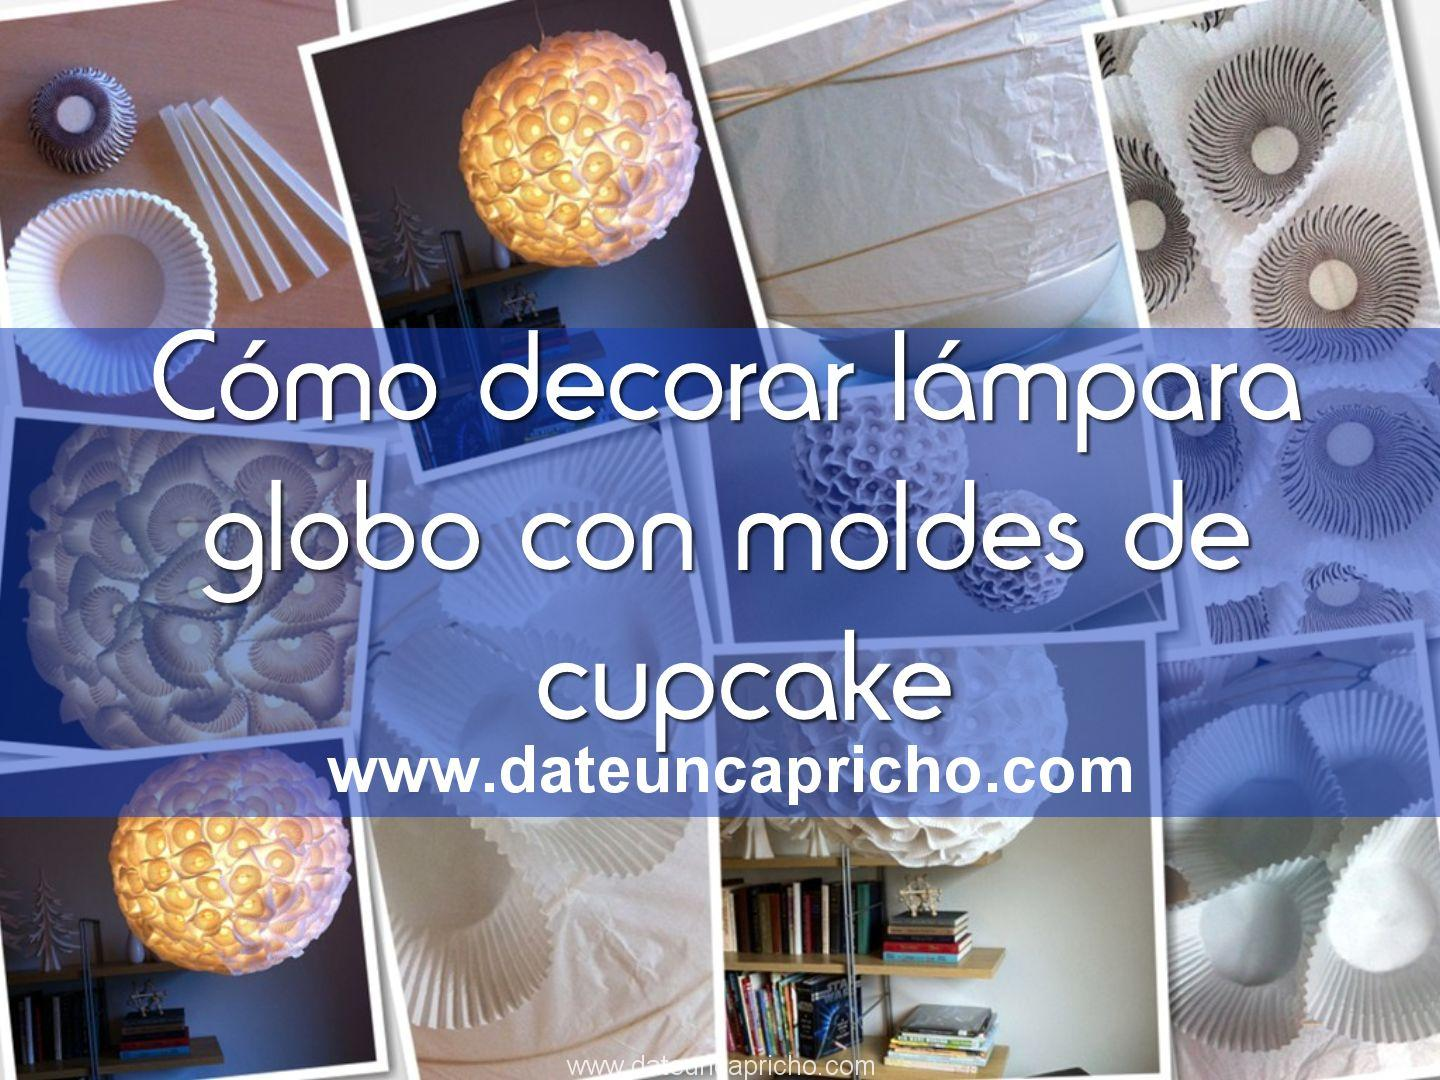 Photo of Cómo decorar lámpara globo con moldes de cupcake